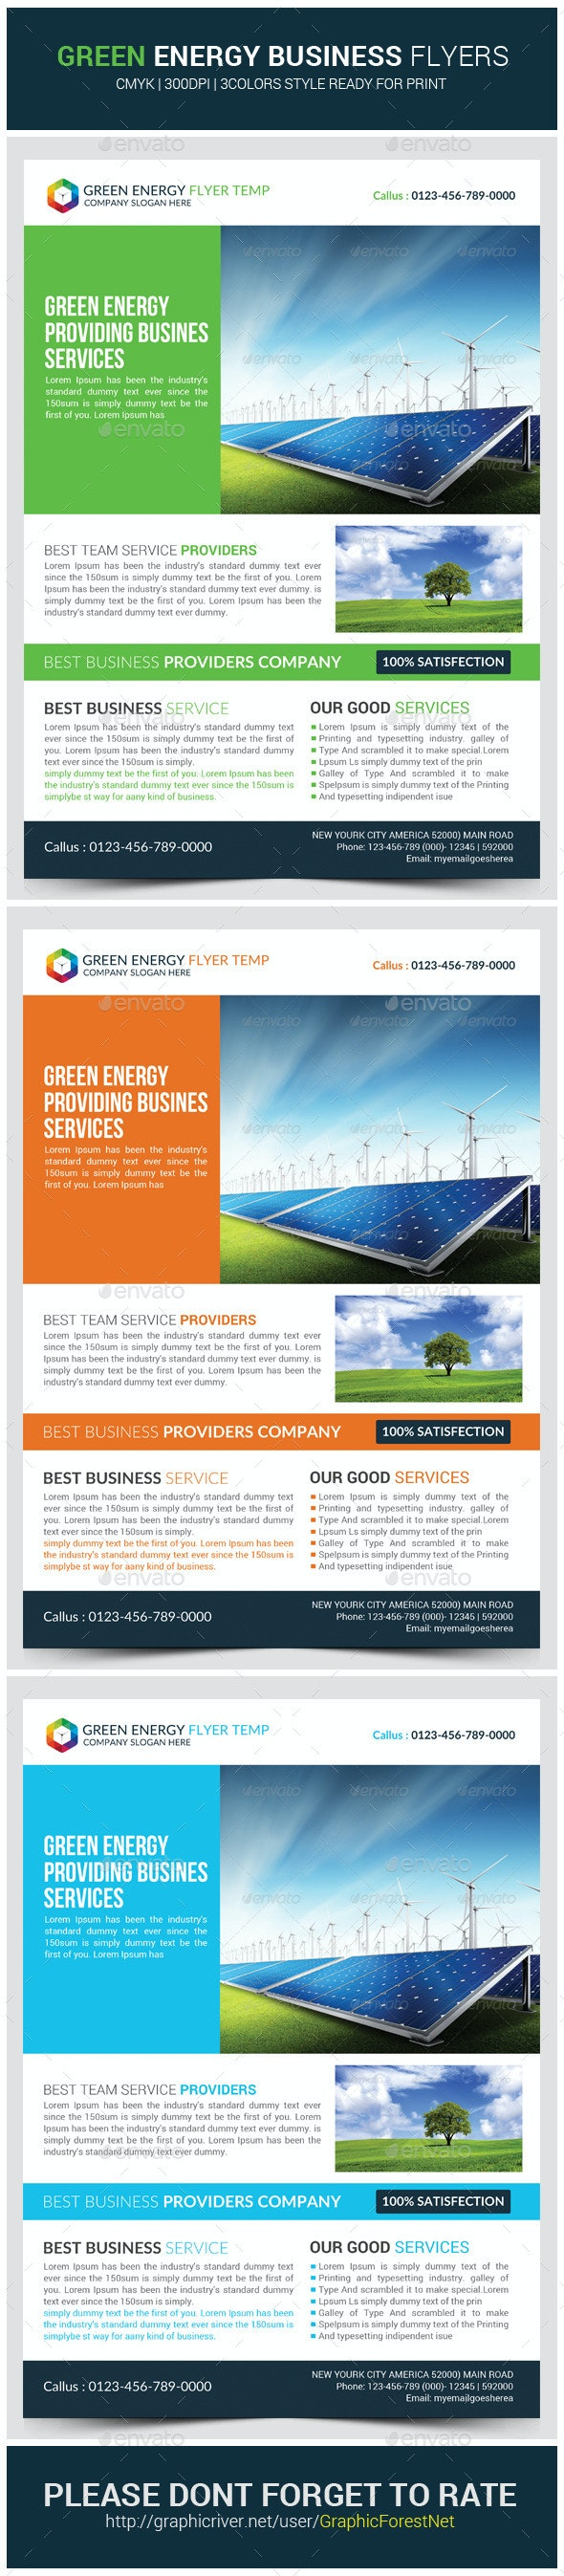 Green Energy Business Flyer Template - Corporate Flyers